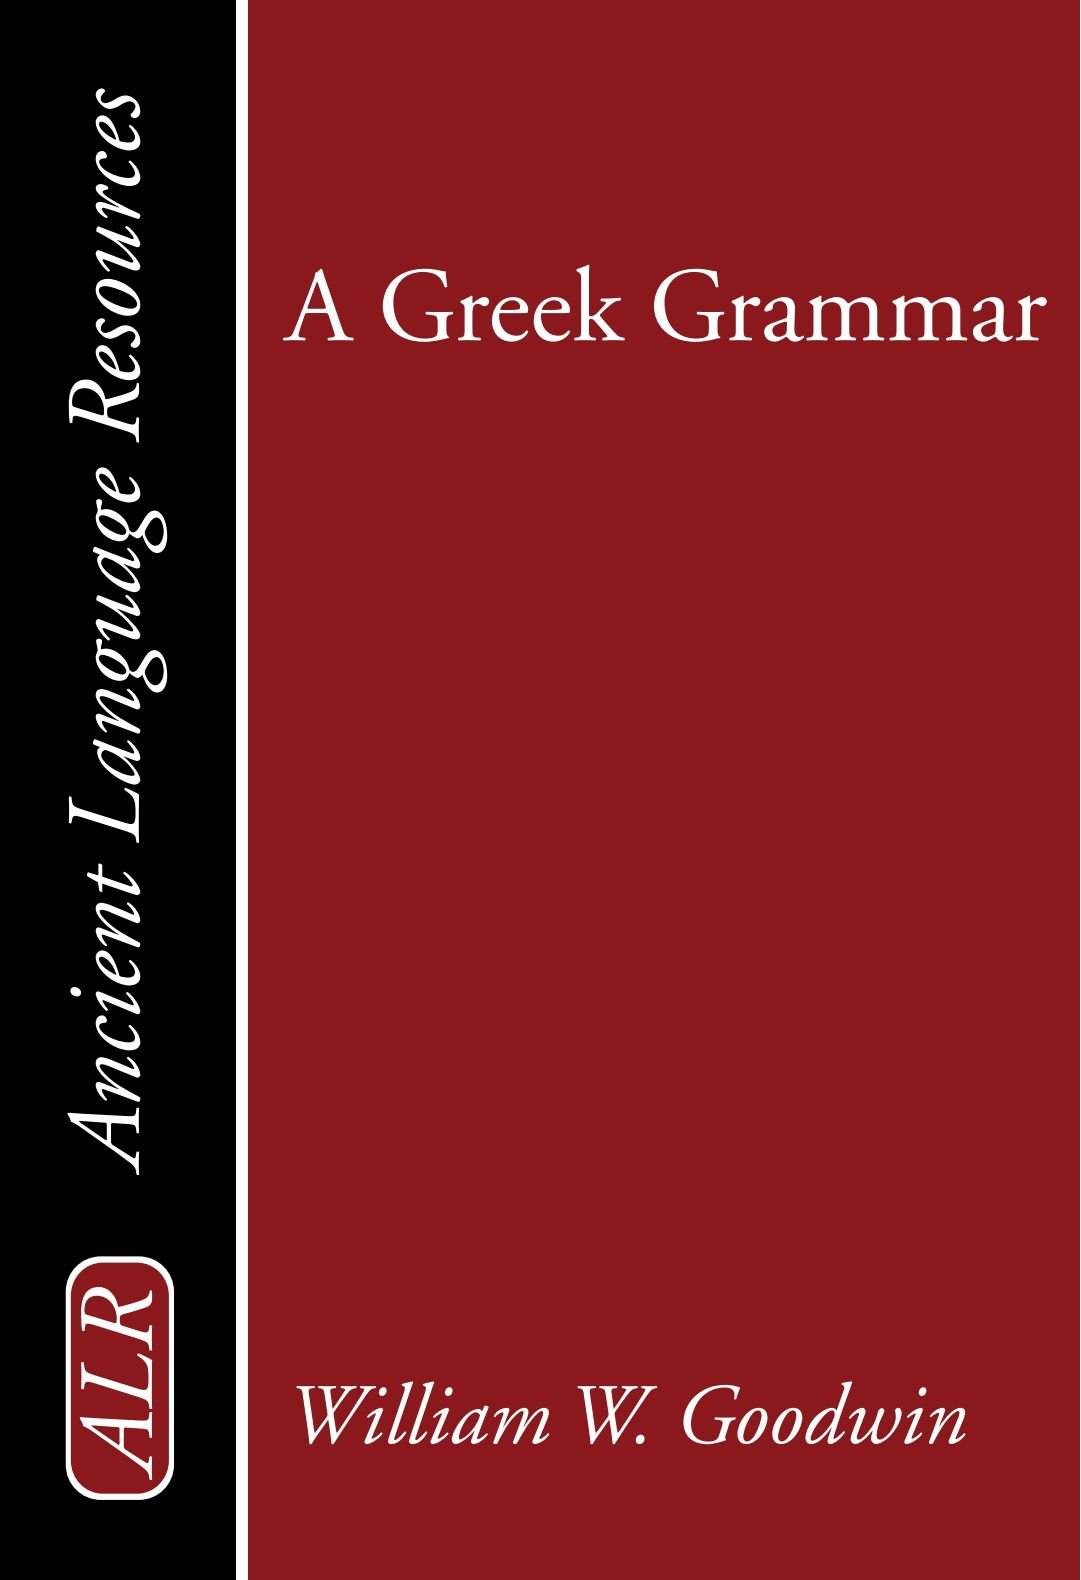 A Greek Grammar: (Ancient Language Resources) (English and Greek Edition) by Brand: Wipf n Stock Pub